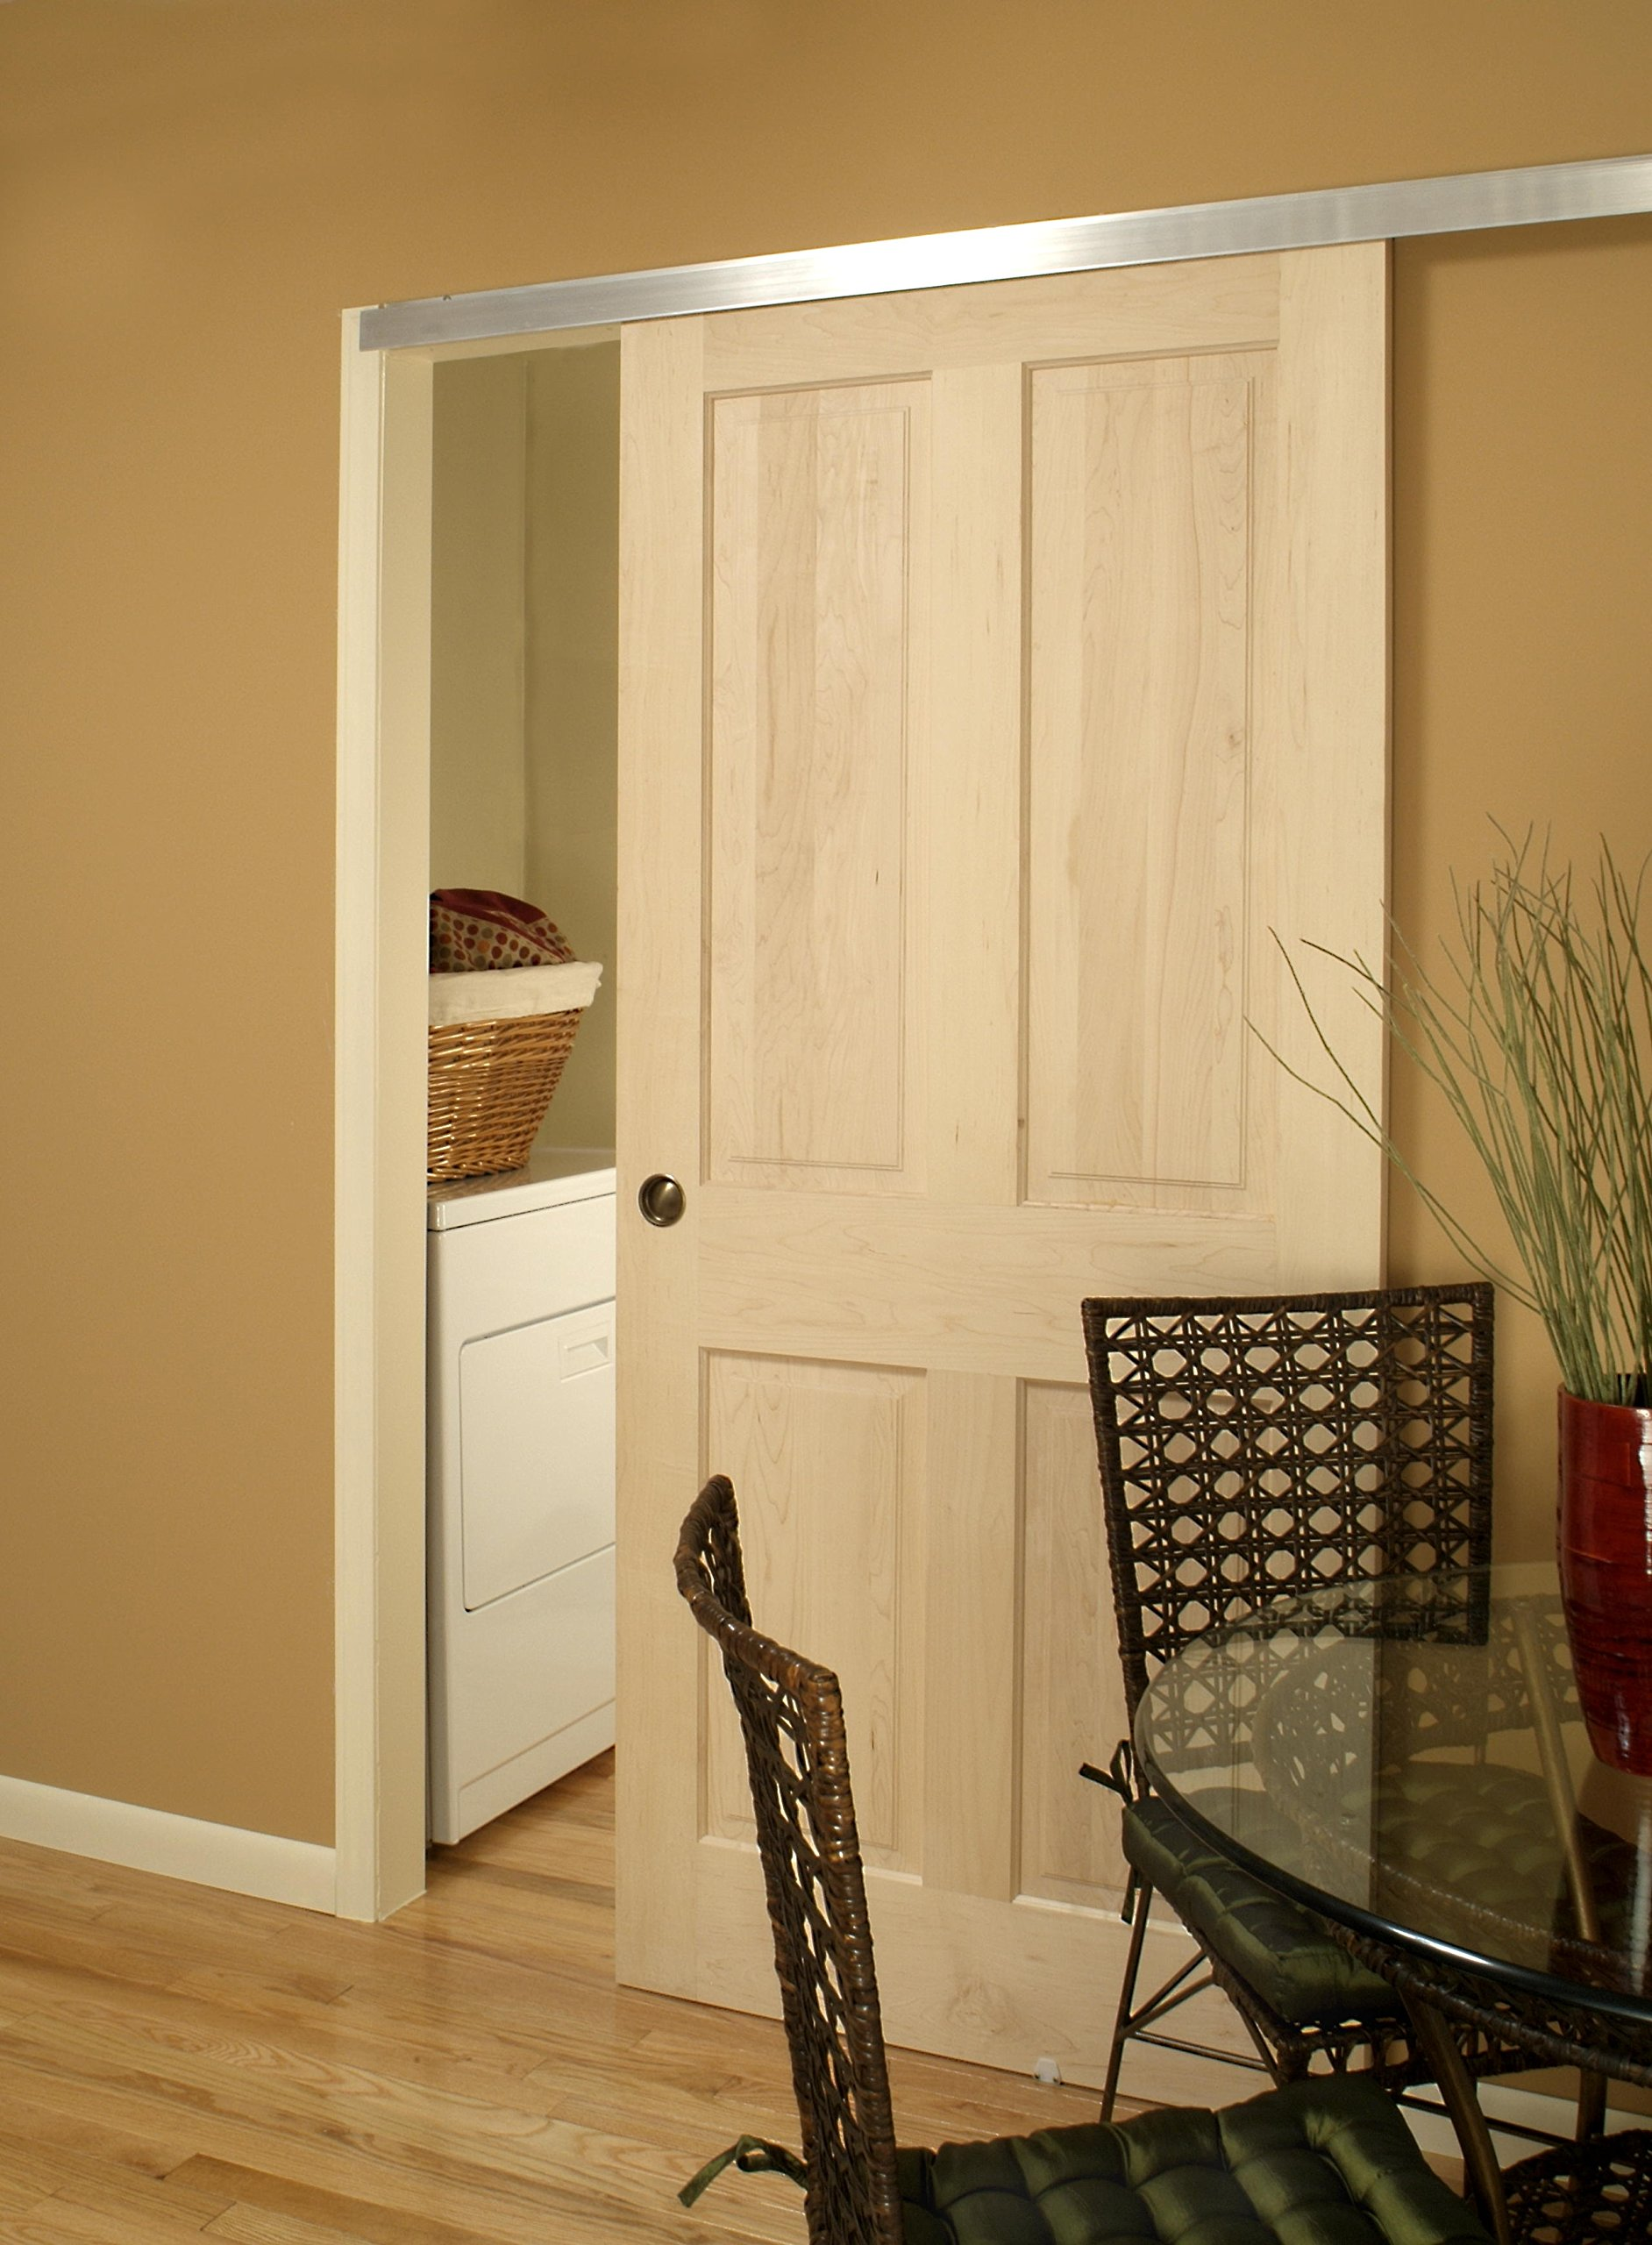 2610 Wall Mount Barn Door Type Sliding Door Hardware 72'' by Johnson Hardware (Image #2)